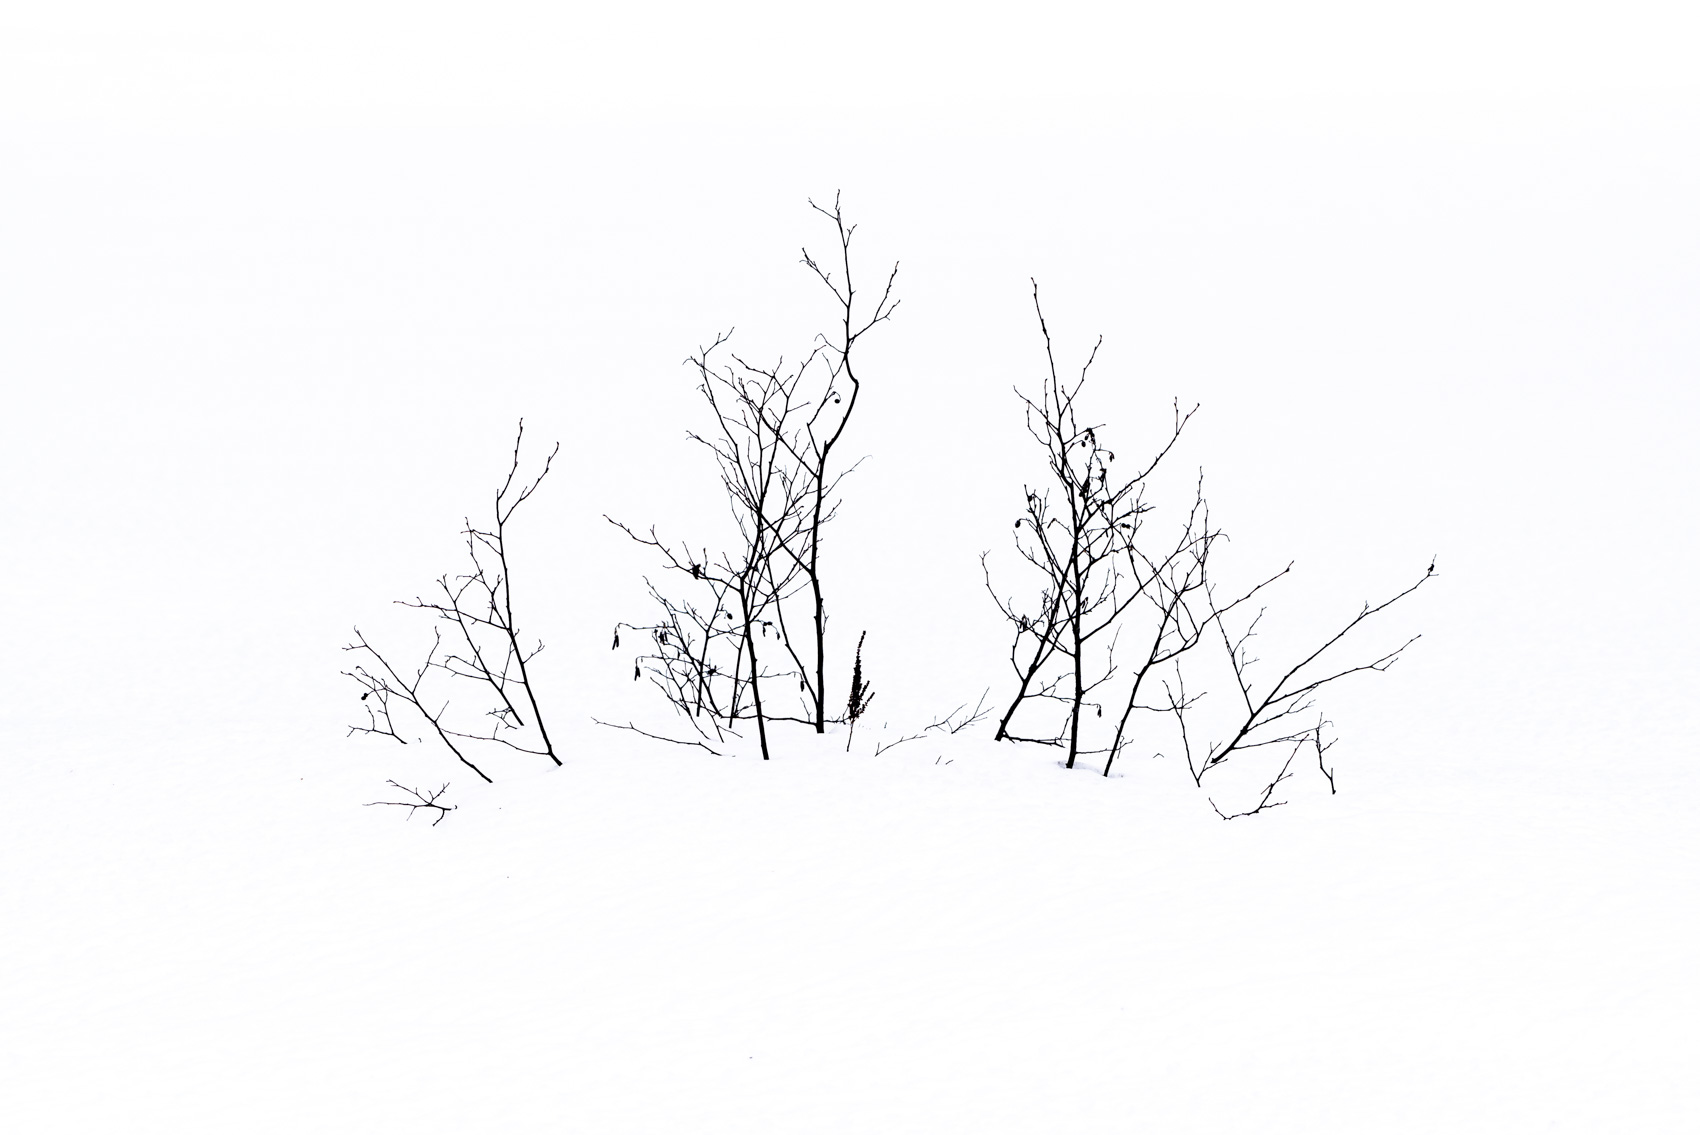 Barren shrub and branches in winter snow